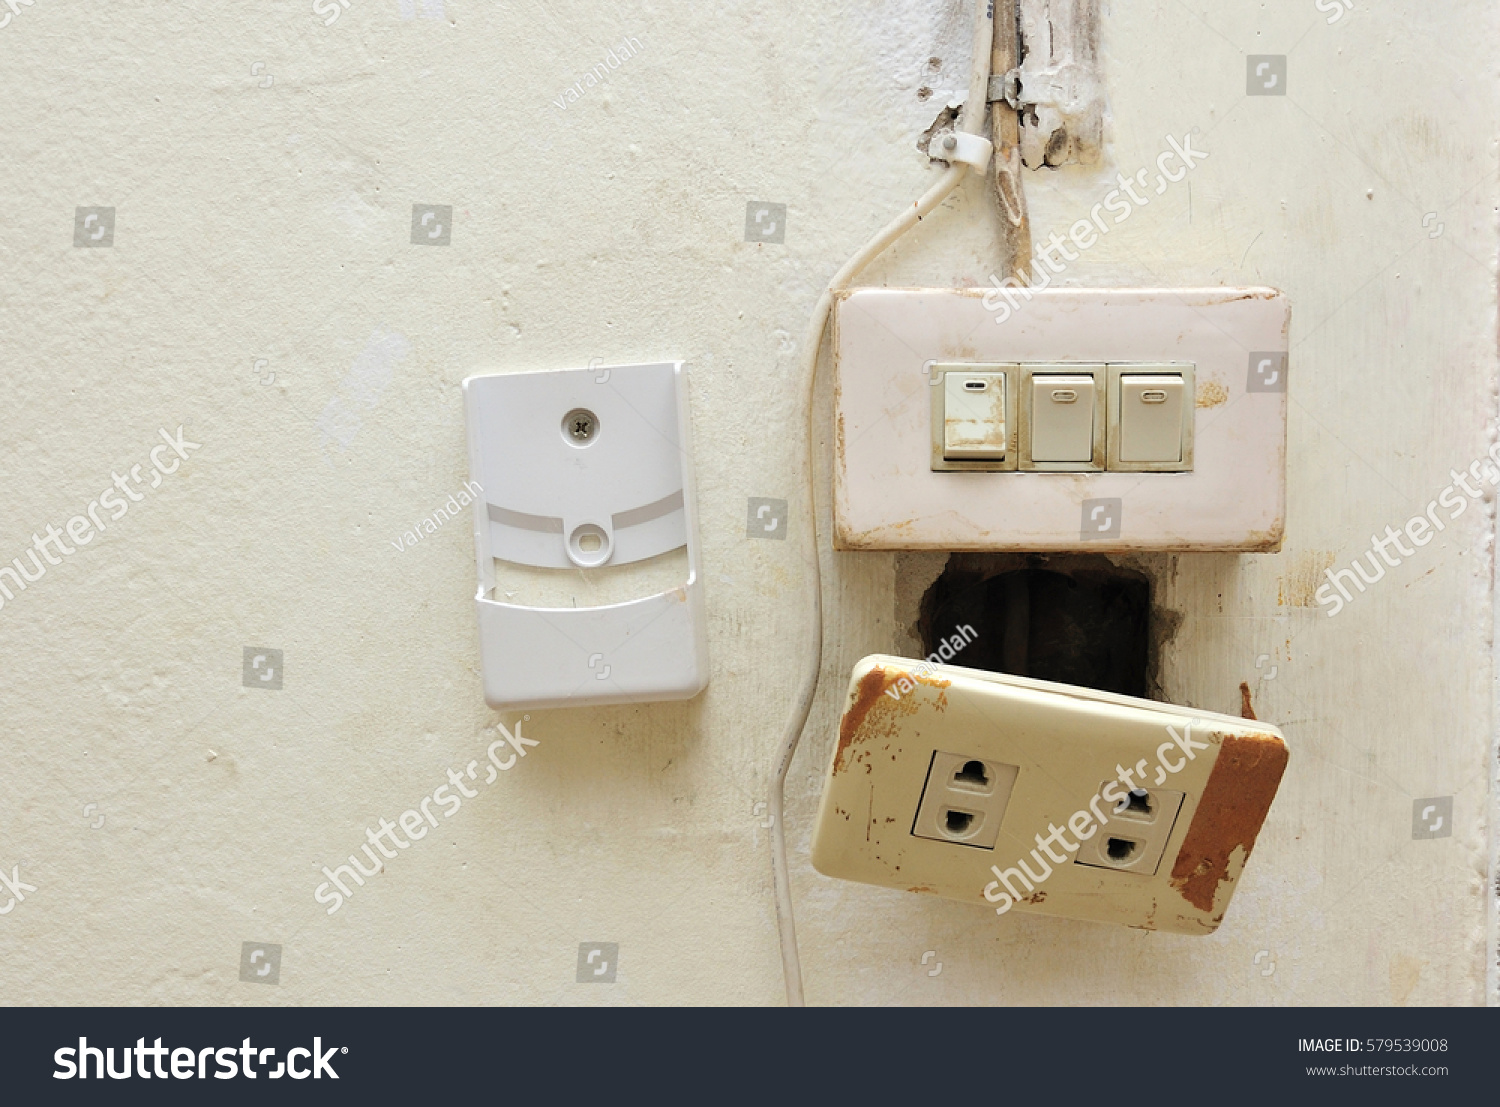 Light Switch Electrical Socket Damaged Stock Photo Edit Now Wiring A Wall To Plug And With On The